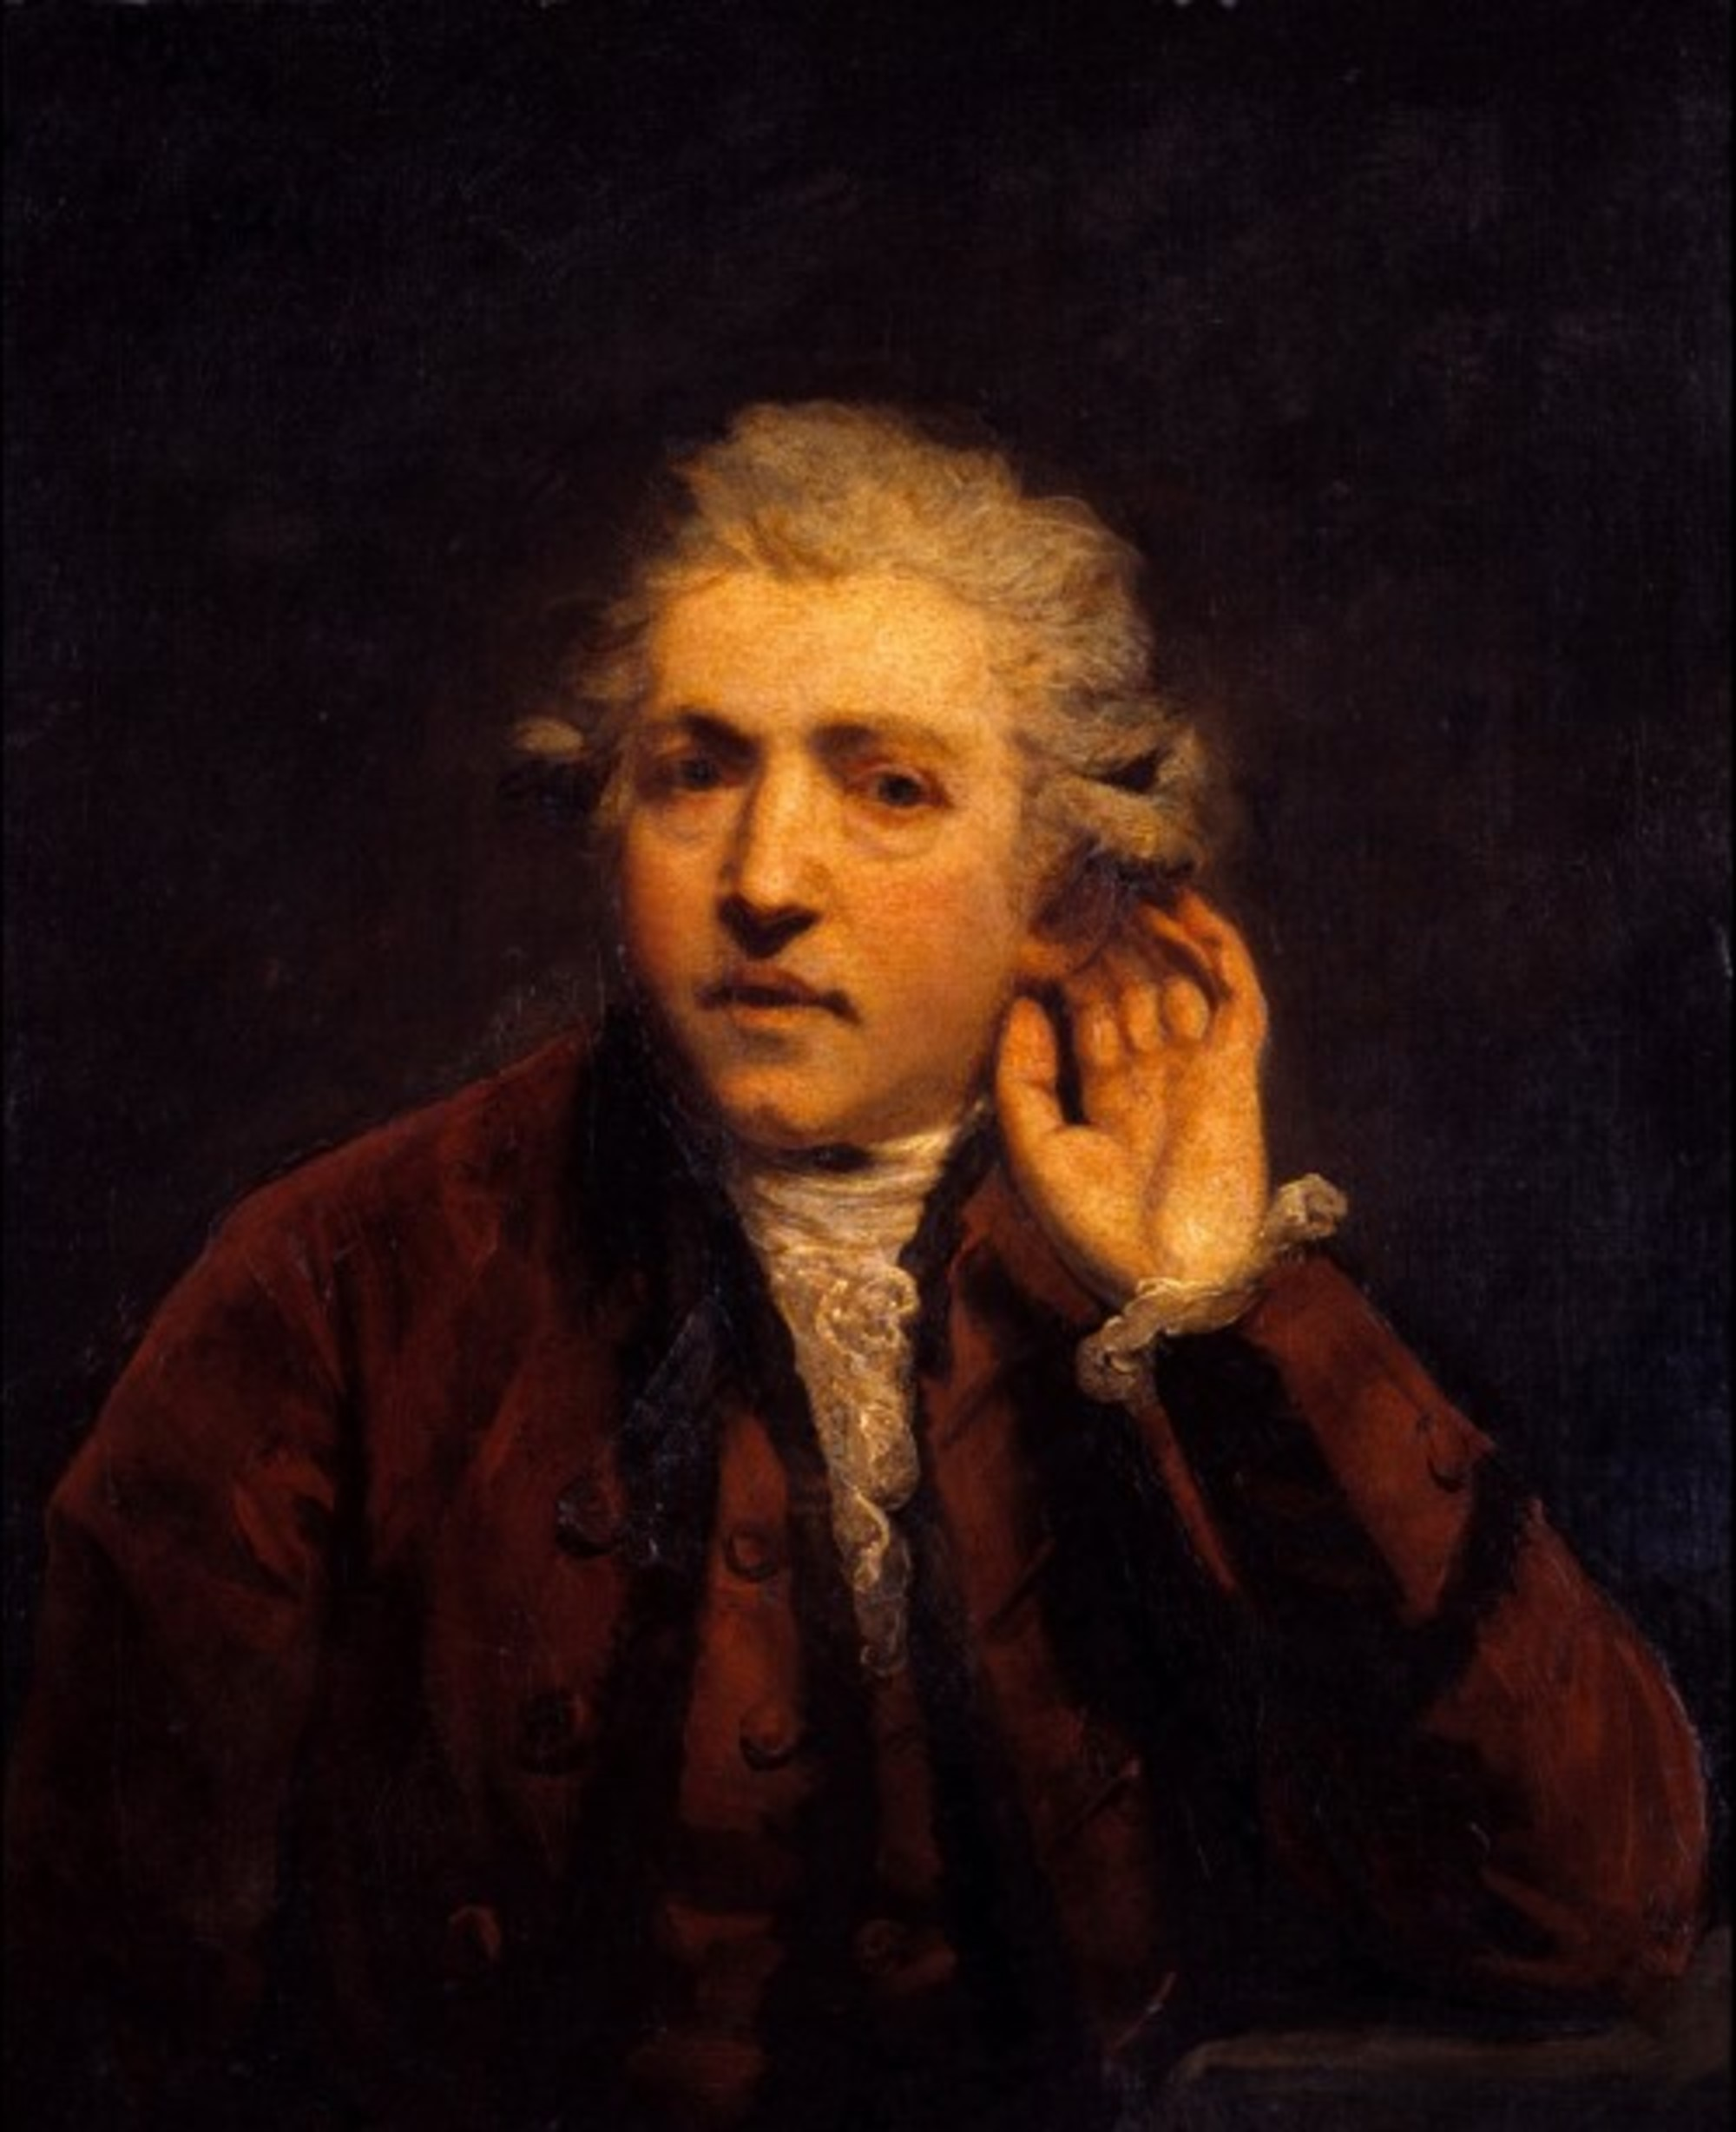 Sir-Joshua-Reynolds---Self-Portrait-as-a-Deaf-Man-Tate-Britain.jpg